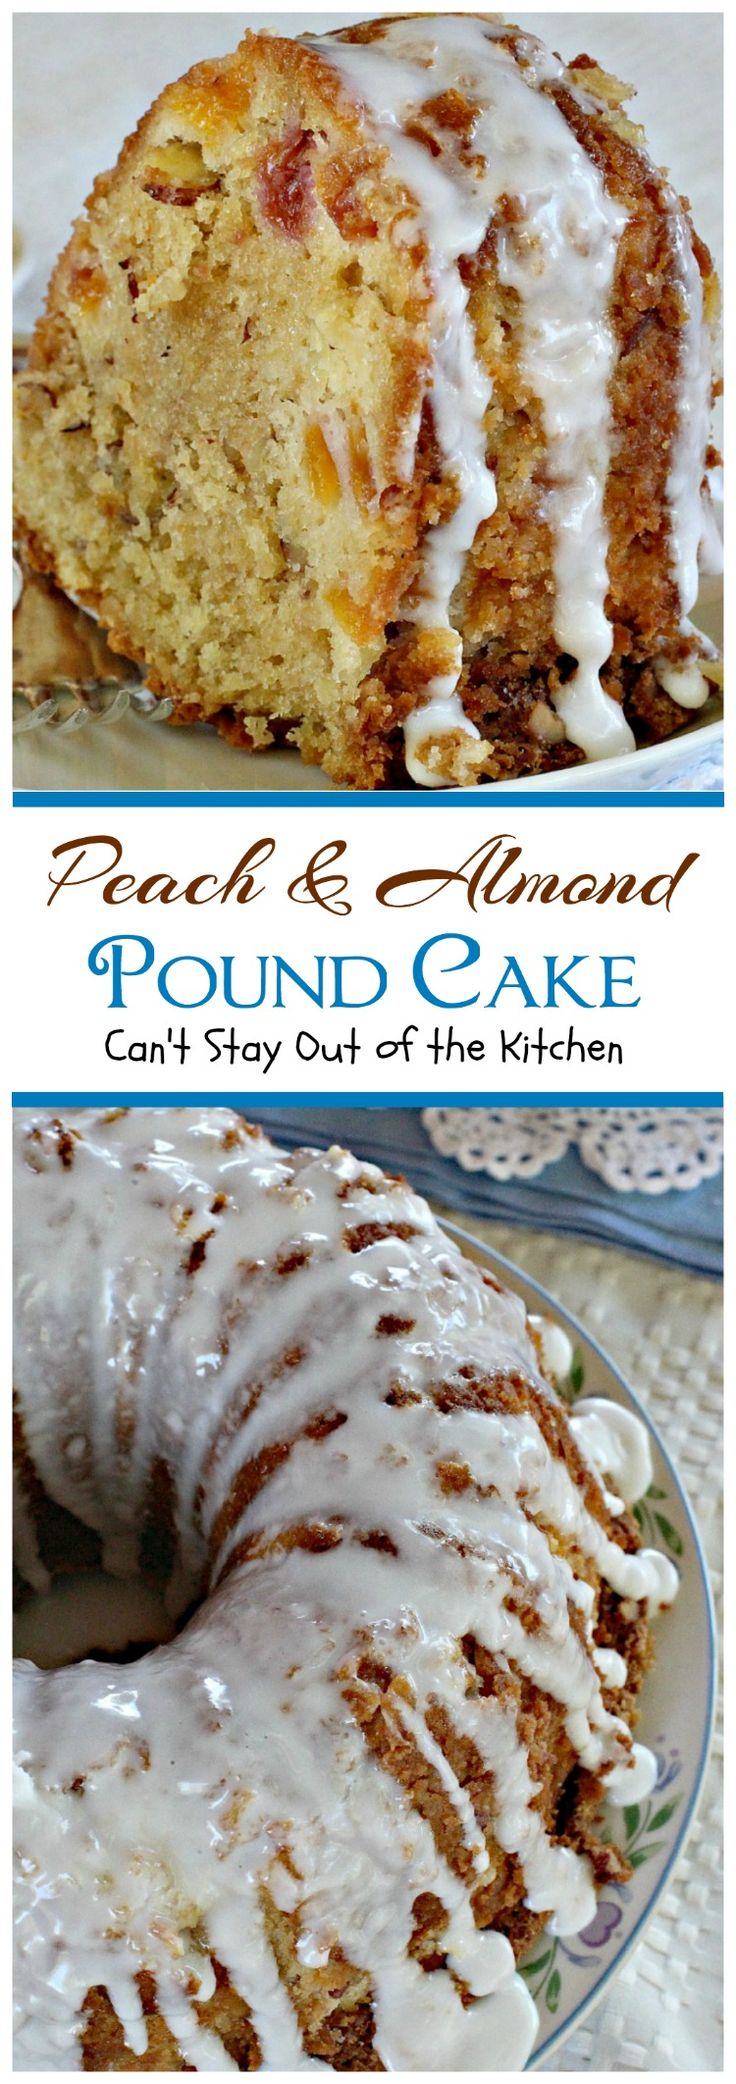 Peach and Almond Pound Cake   Can't Stay Out of the Kitchen